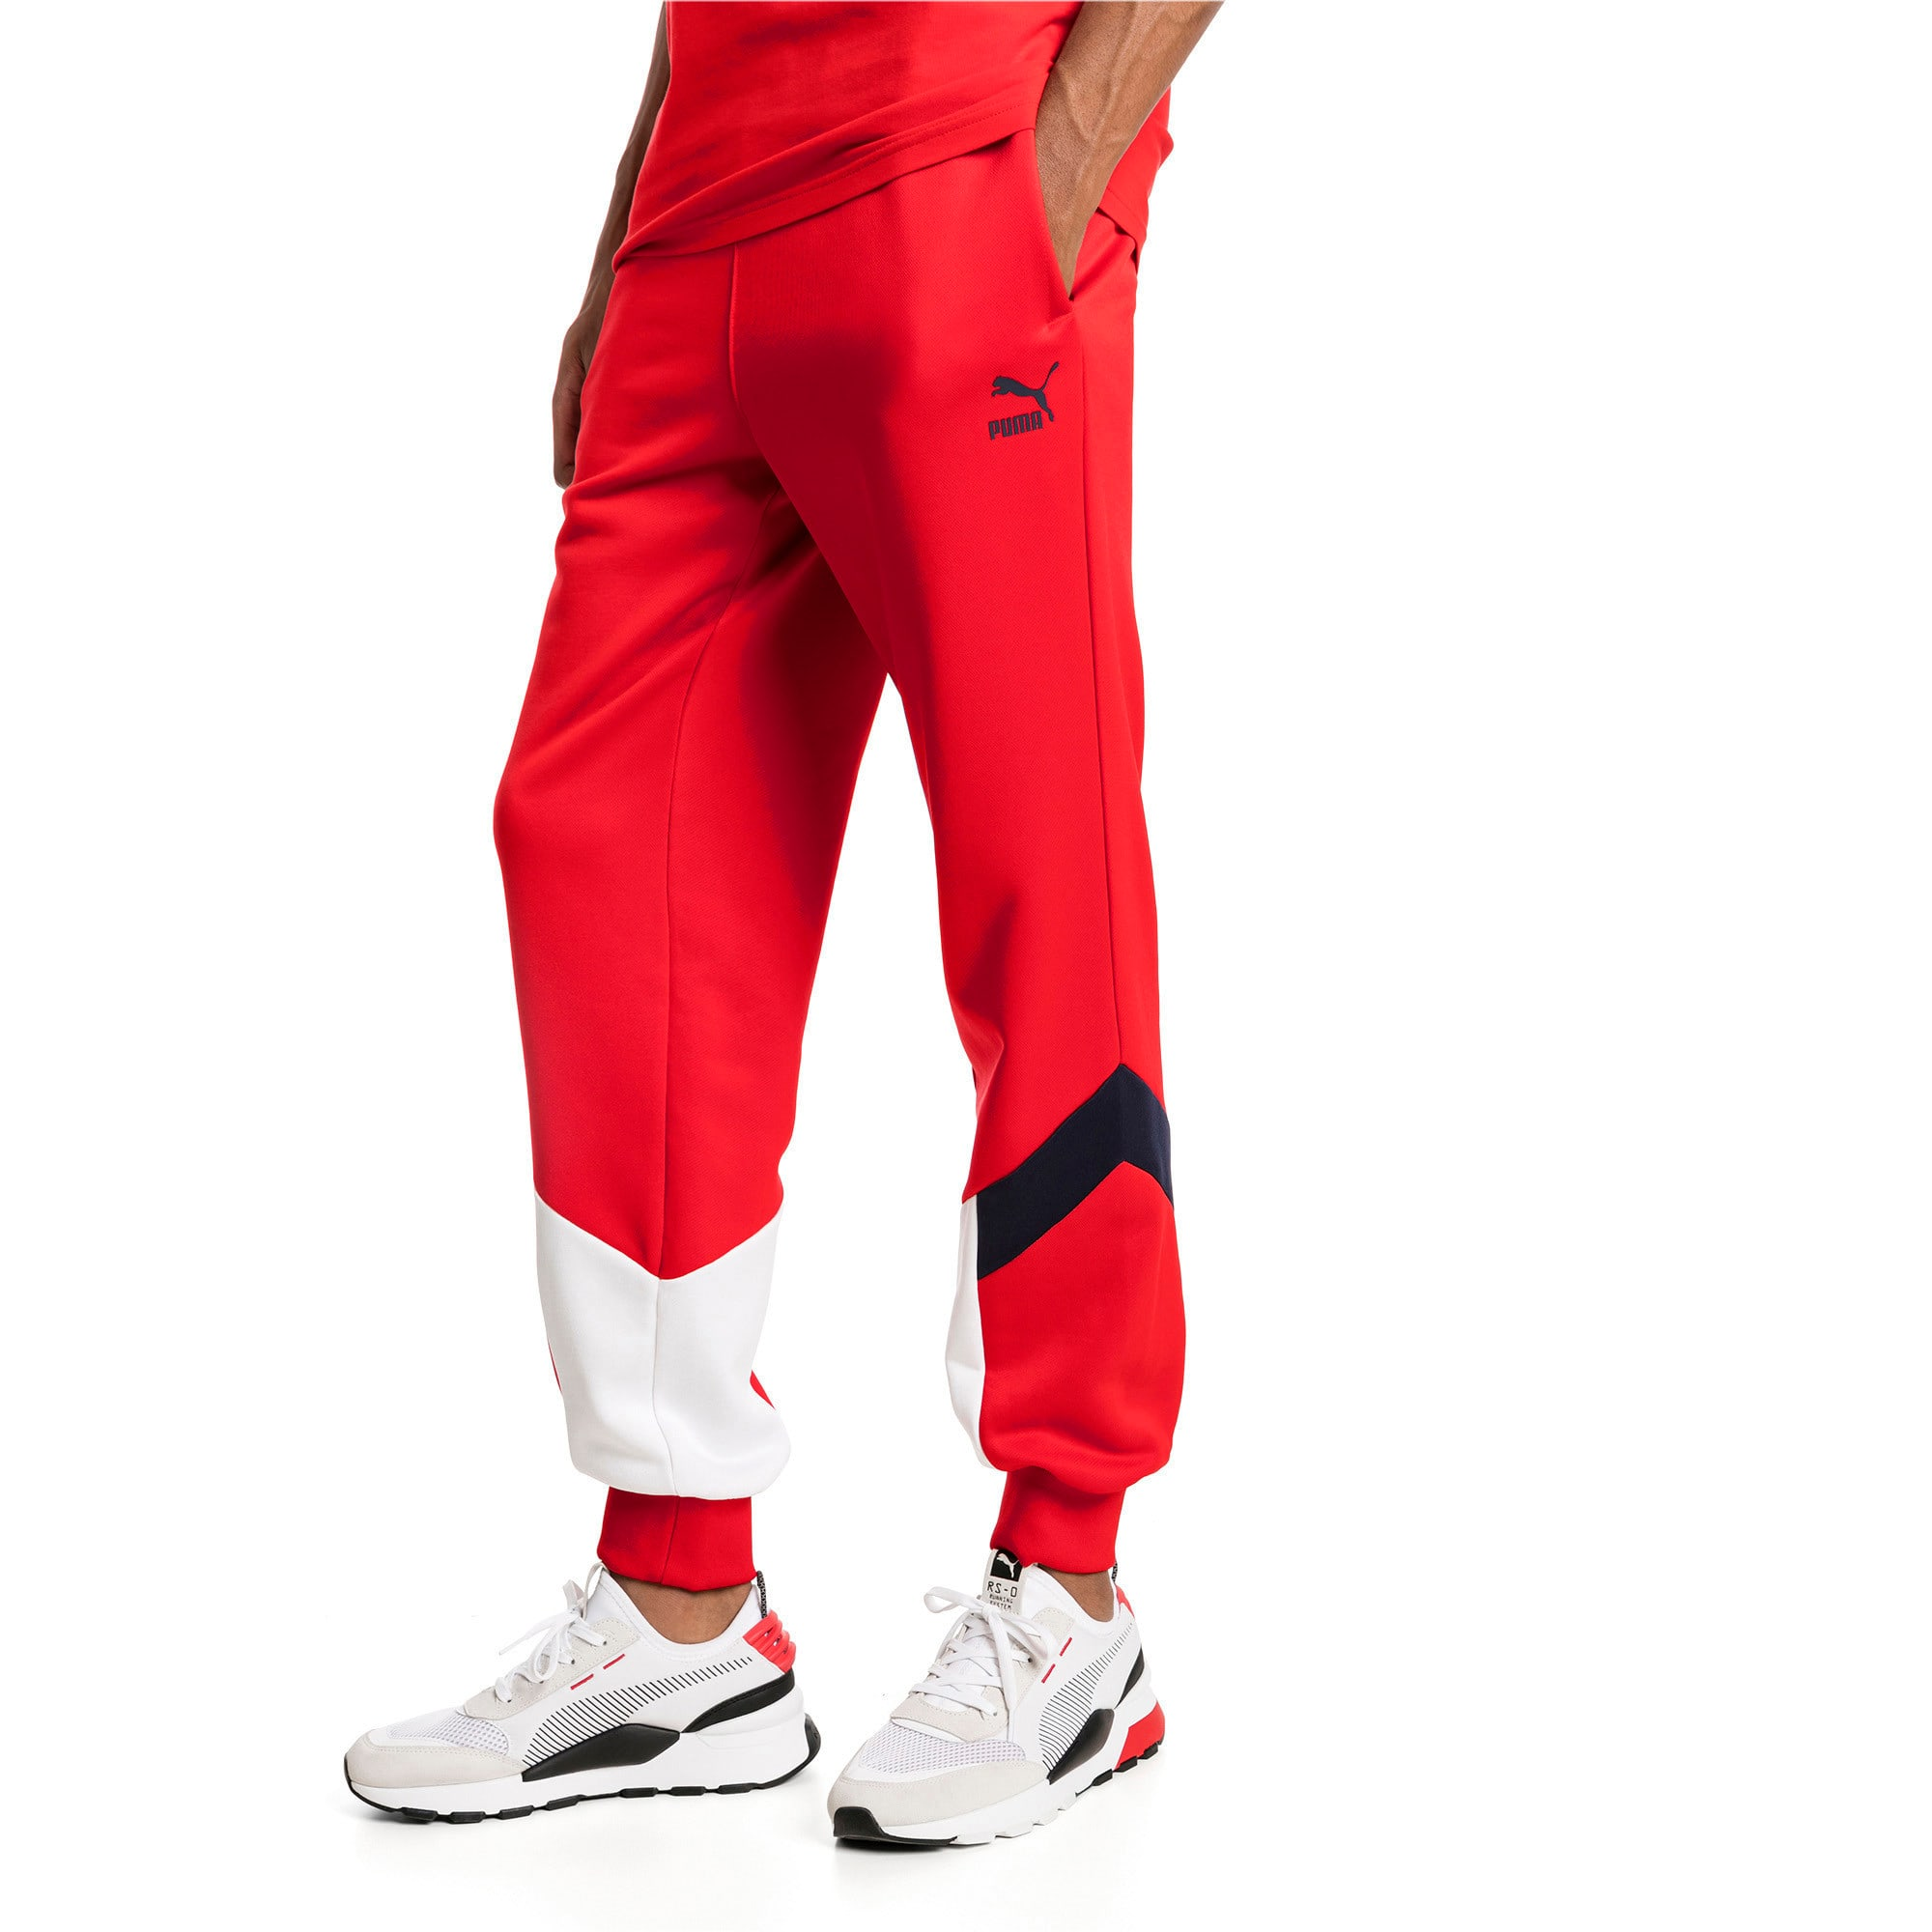 Thumbnail 1 of Iconic MCS Men's Track Pants, High Risk Red, medium-IND